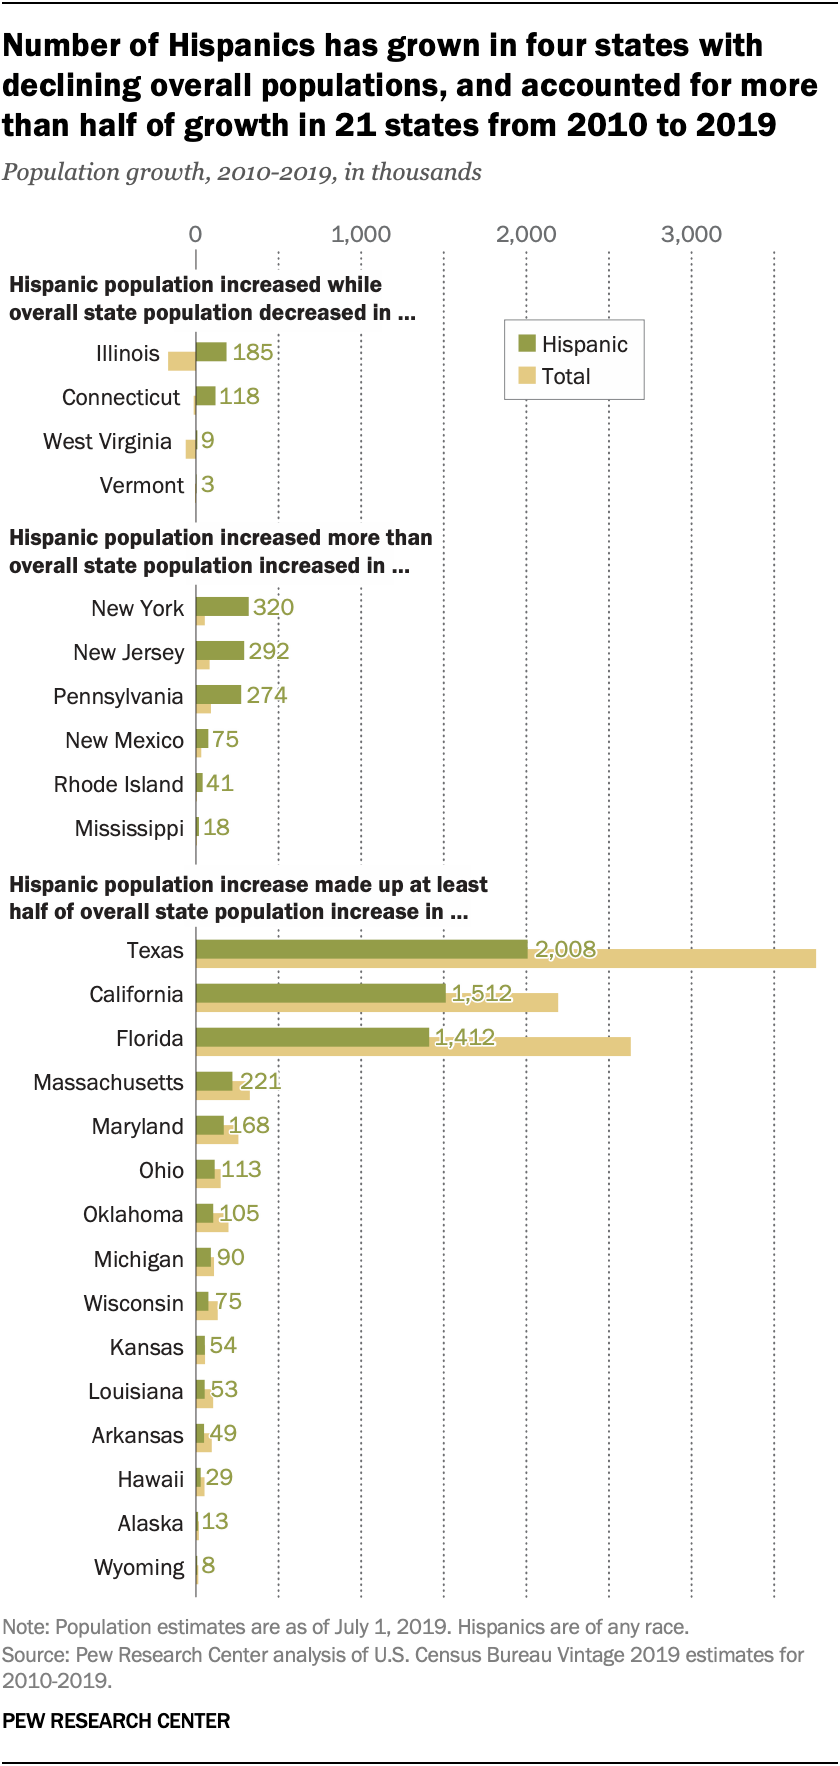 Number of Hispanics has grown in four states with declining overall populations, and accounted for more than half of growth in 21 states from 2010 to 2019